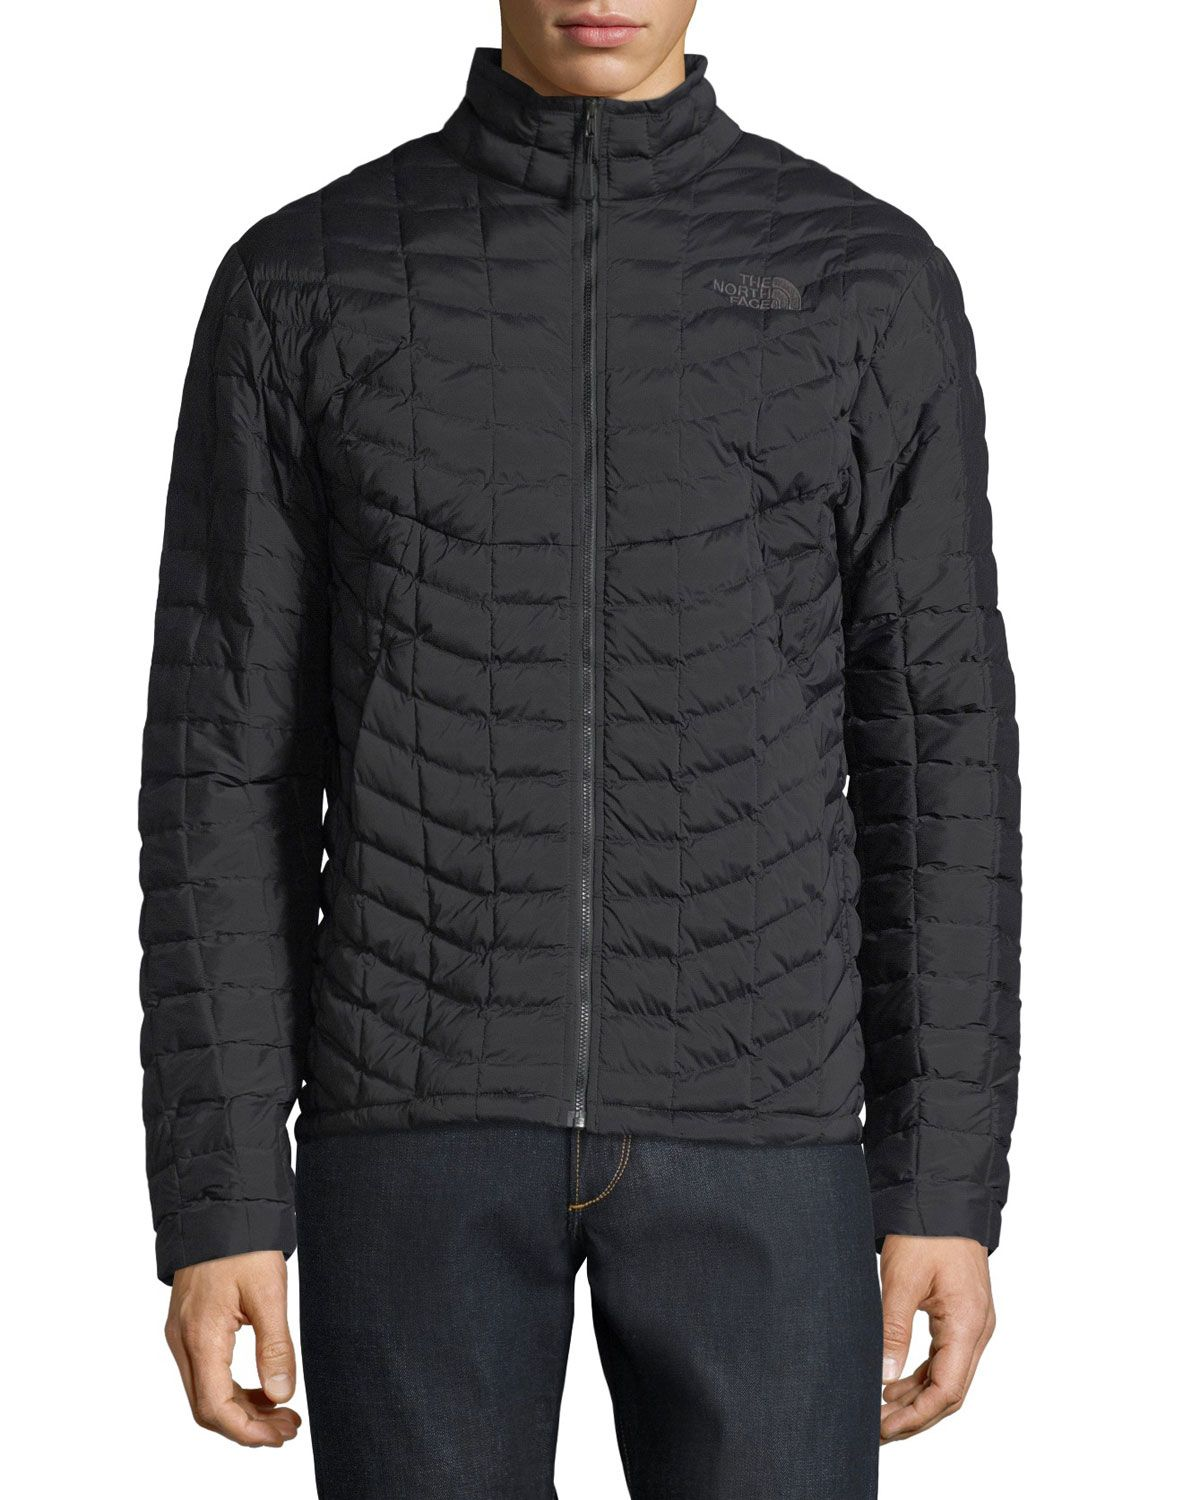 0b08d18e84 Stretch ThermoBall Jacket Black | Products | Jackets, The north face ...